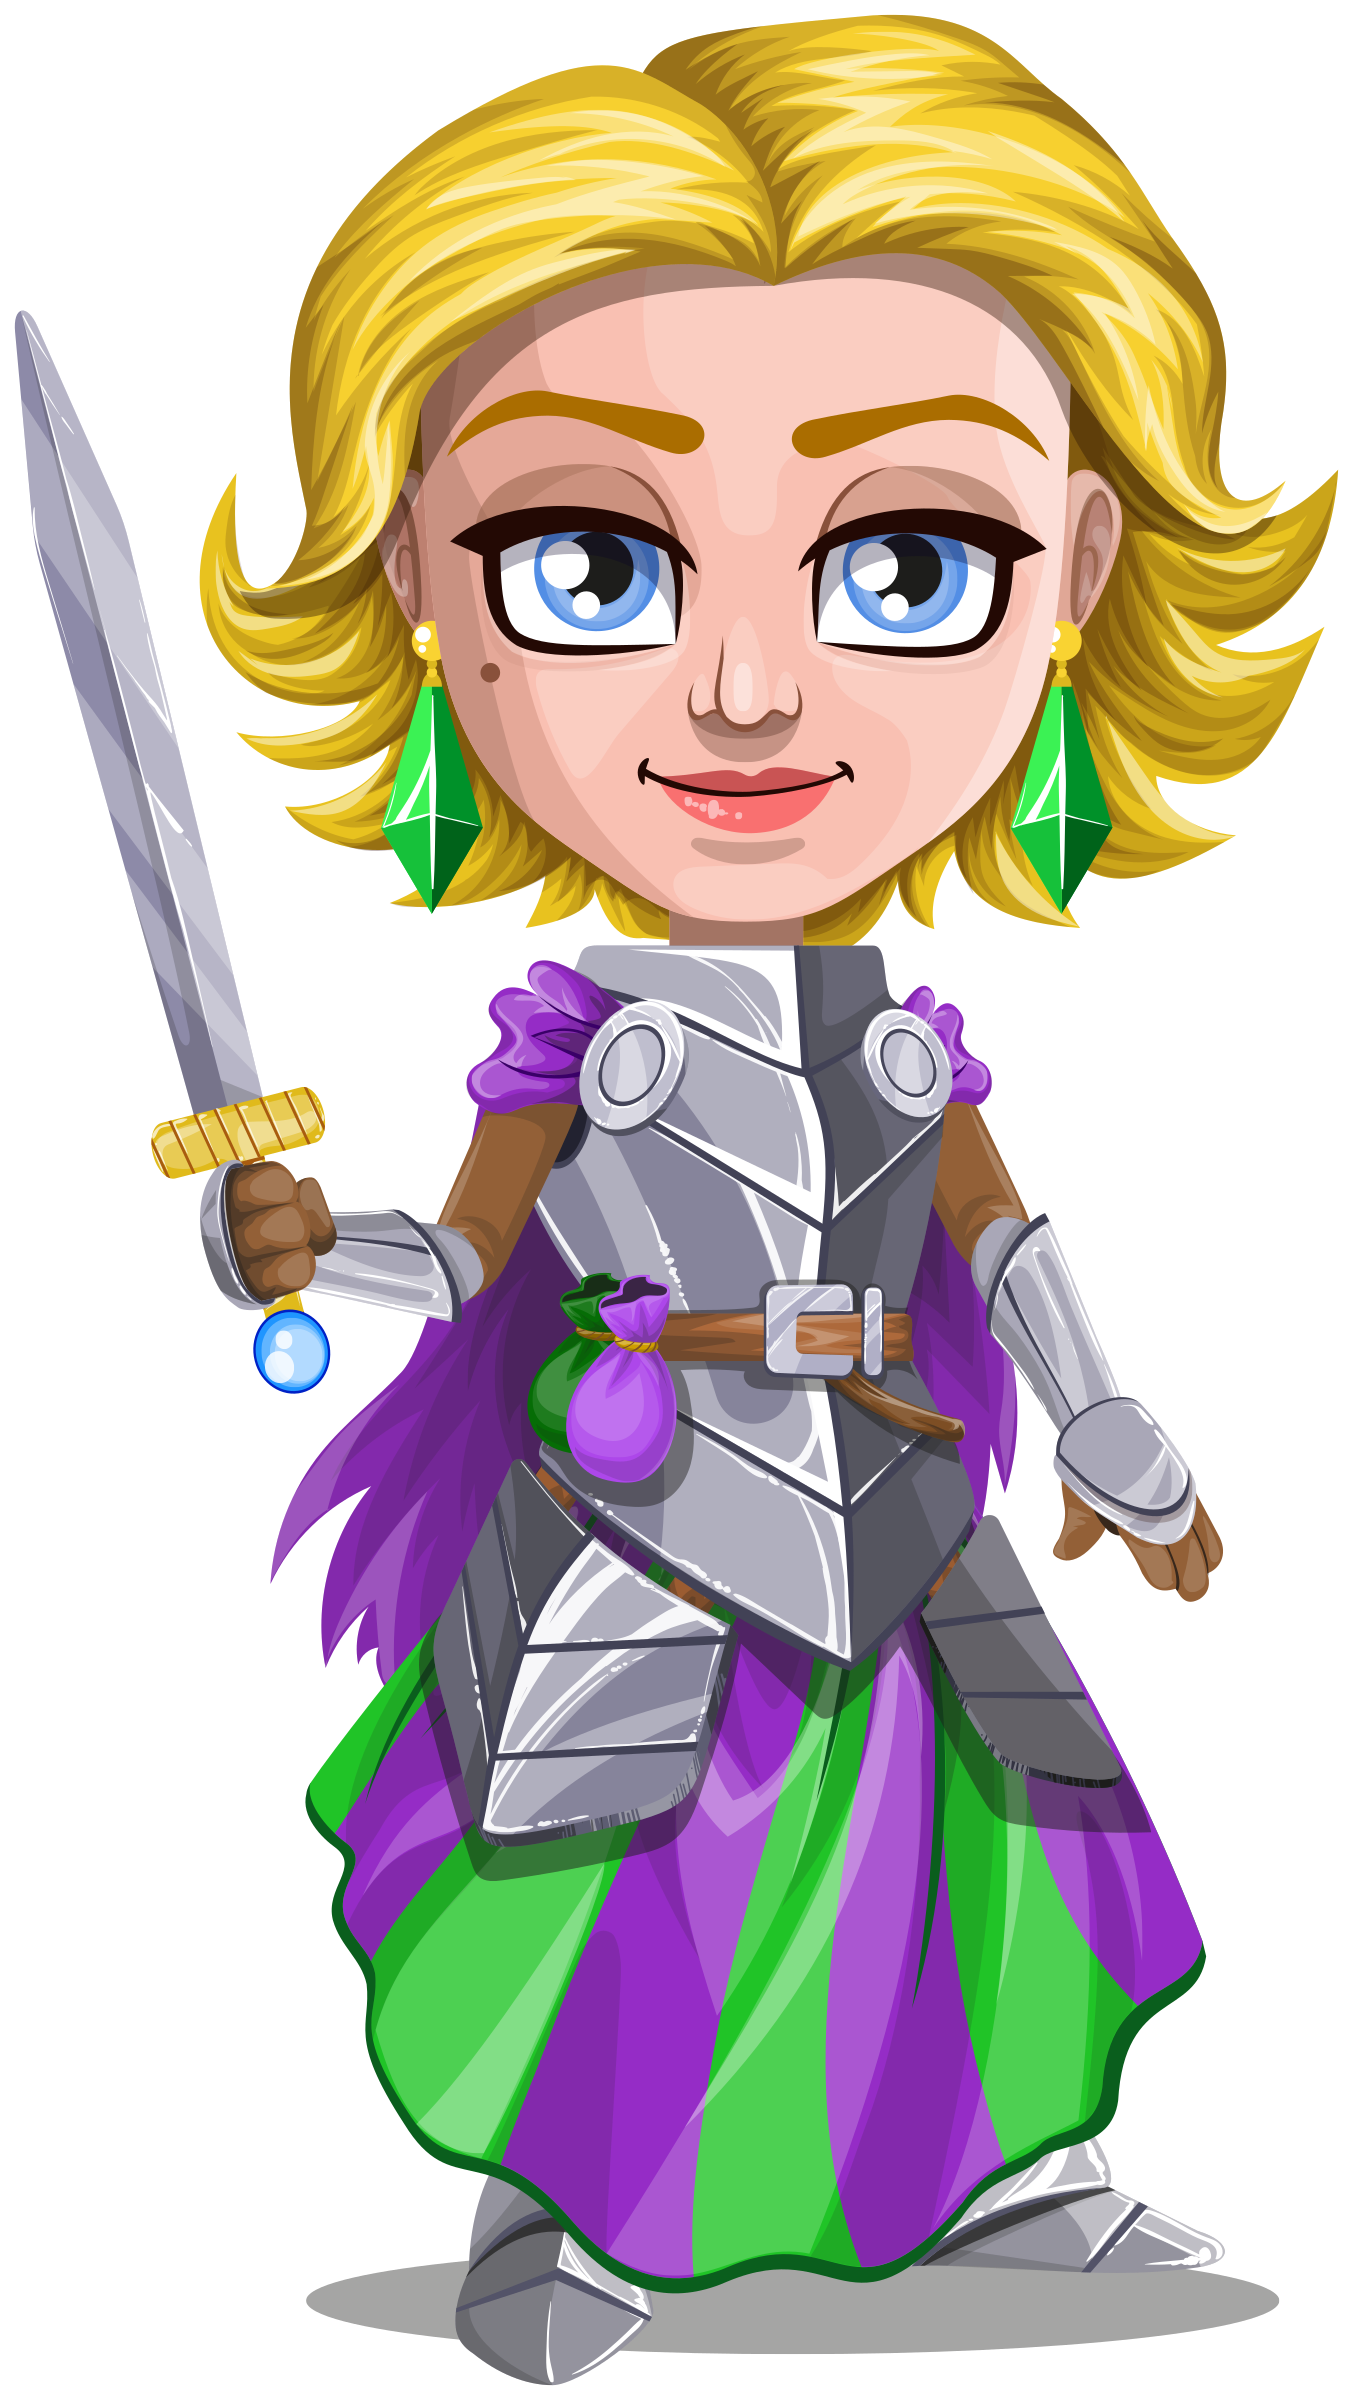 Woman knight warrior in armor, holding a sword - 2 - blonde by Juhele